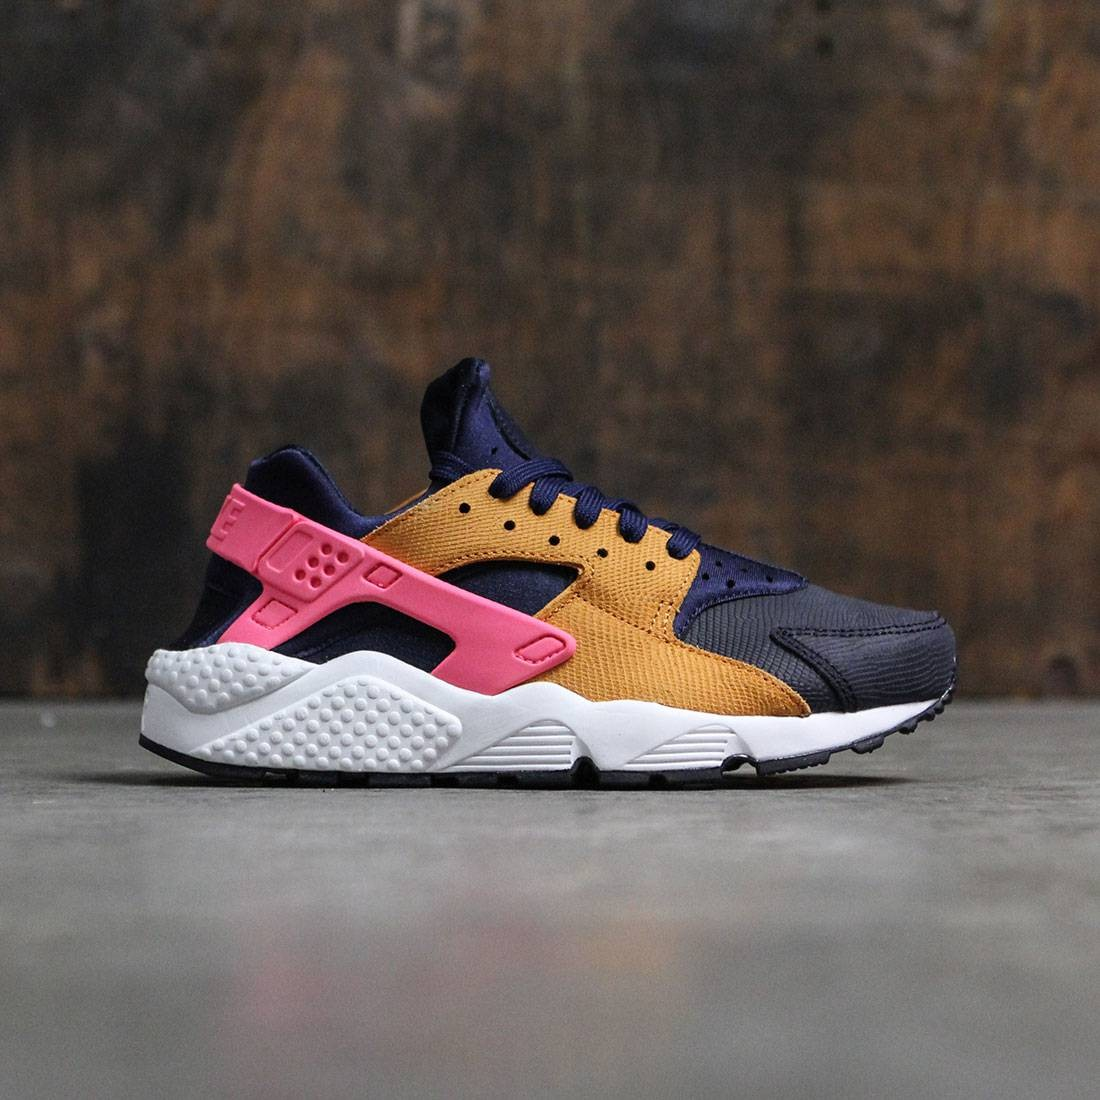 buy popular abd92 488c6 Nike Women Women S Nike Air Huarache Run Premium (obsidian    black-sunset-digital pink)